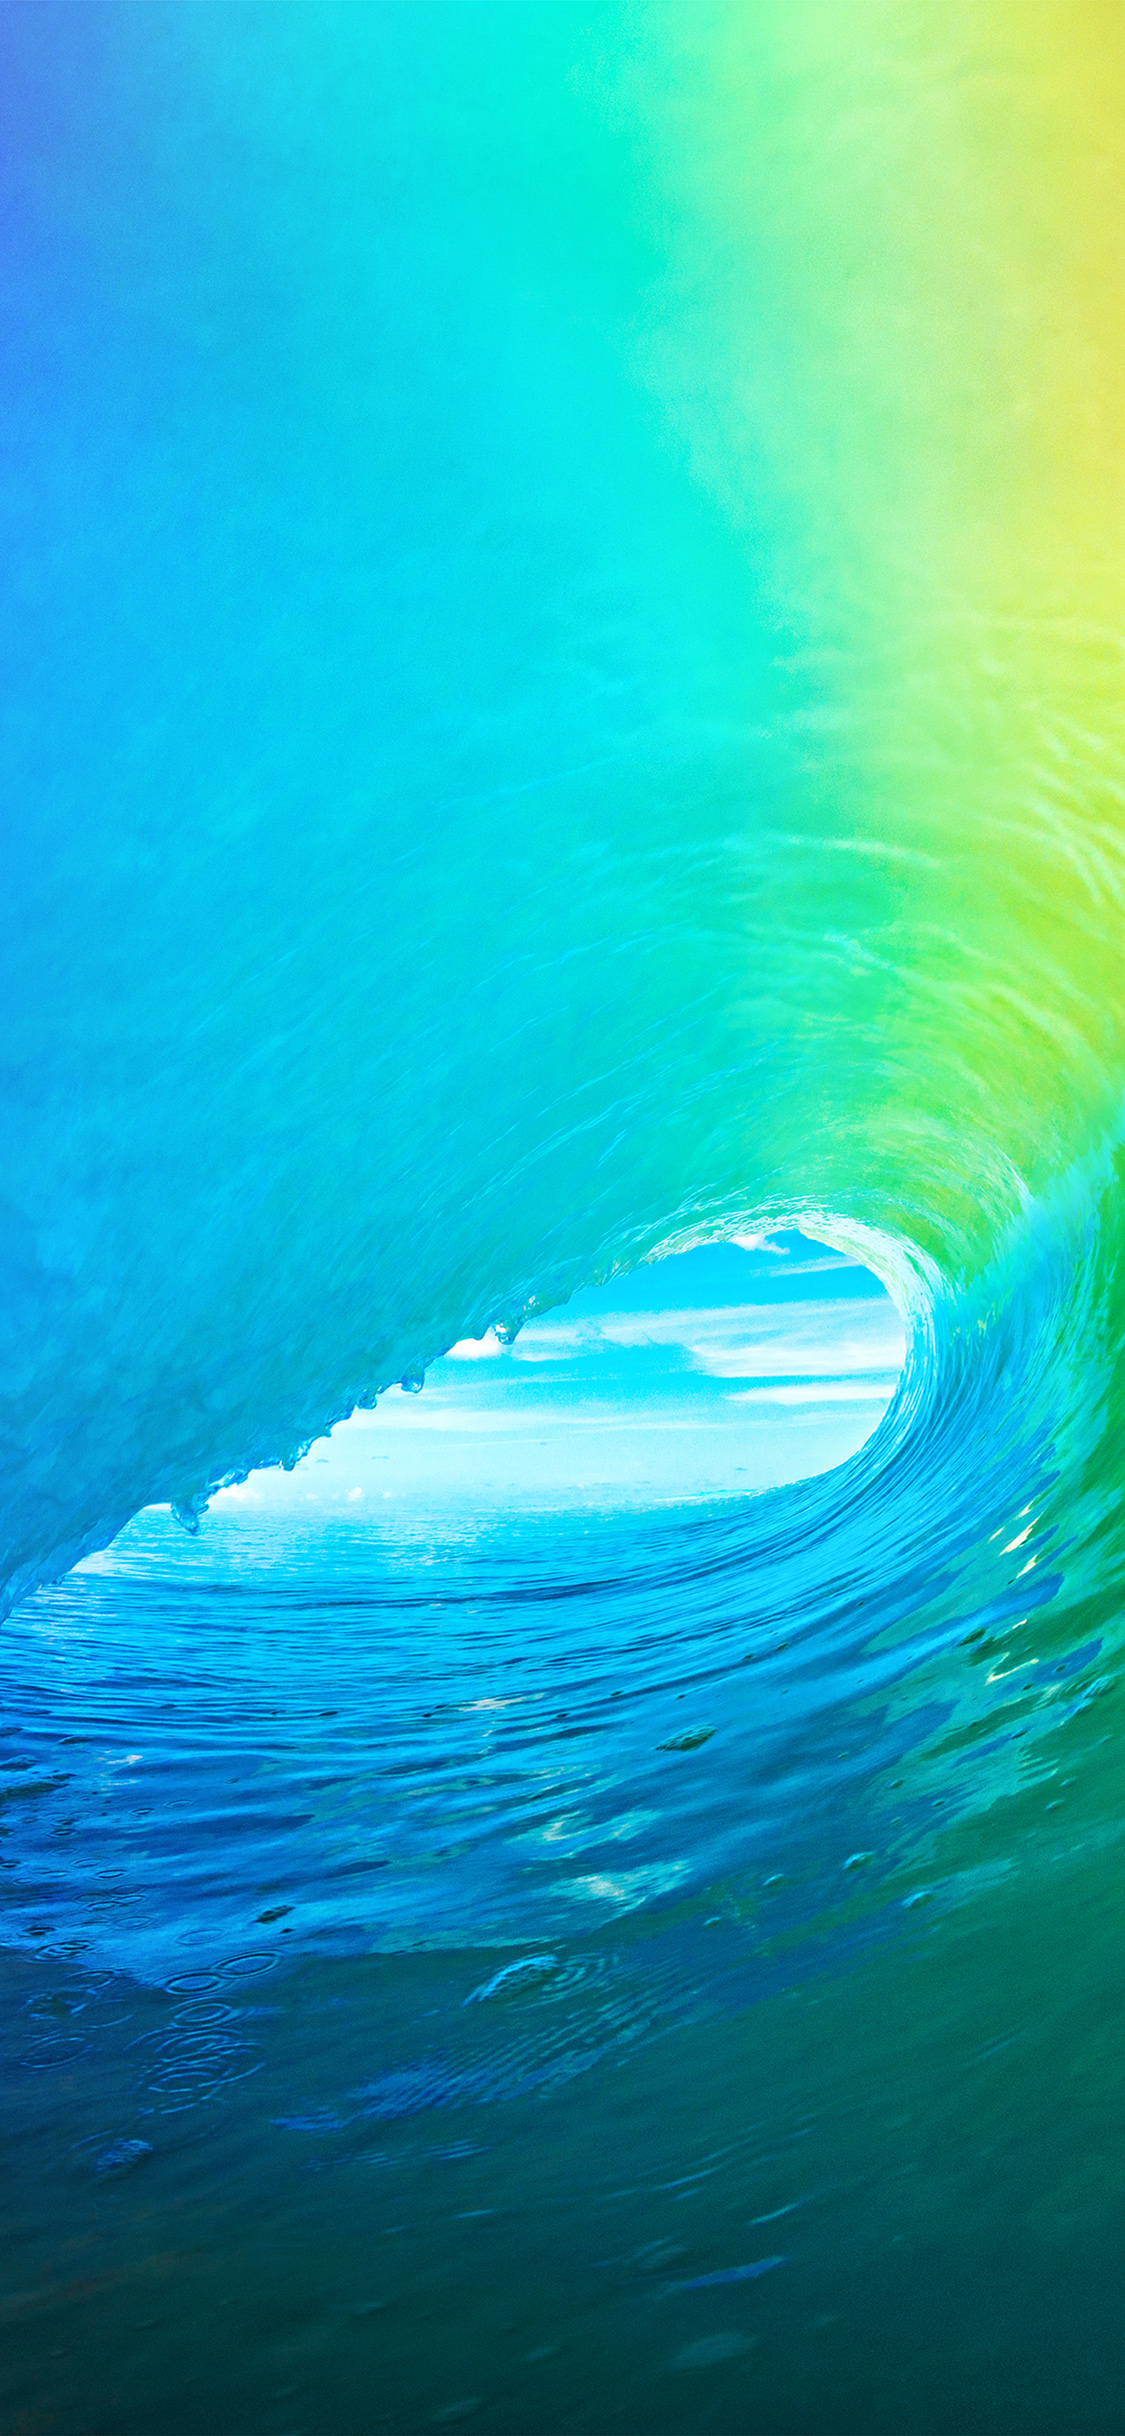 iPhoneXpapers.com-Apple-iPhone-wallpaper-am81-ios9-apple-wave-rainbow-sea-ocean